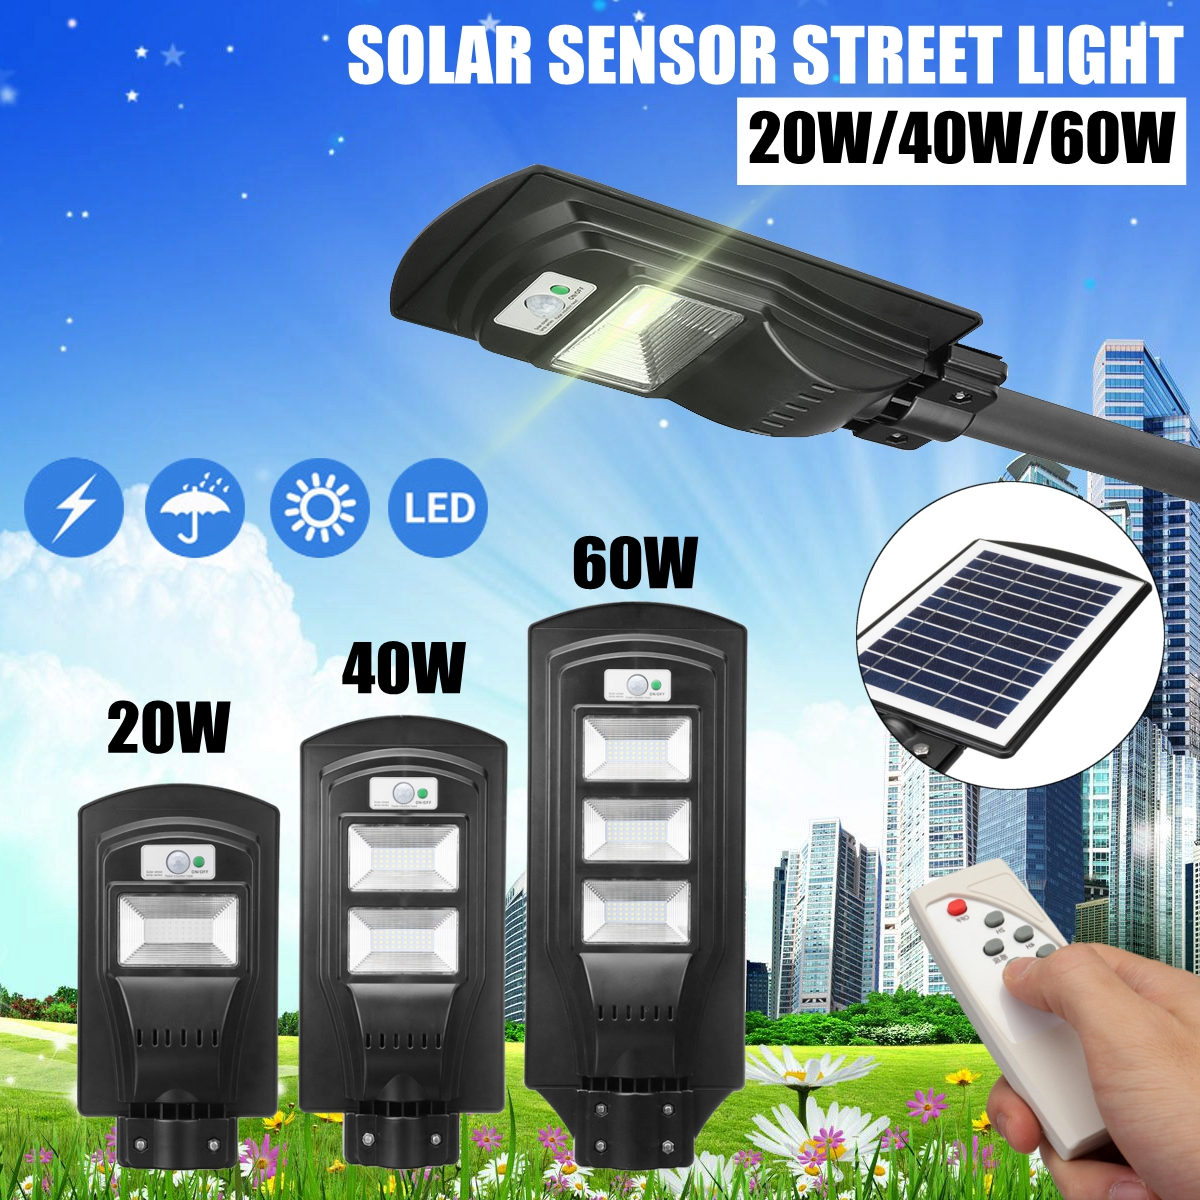 20/40/60W Outdoor LED Constantly Bright & Induction Solar Sensor Light Remote Control Wall Lamp Street Garden Pathway Light20/40/60W Outdoor LED Constantly Bright & Induction Solar Sensor Light Remote Control Wall Lamp Street Garden Pathway Light